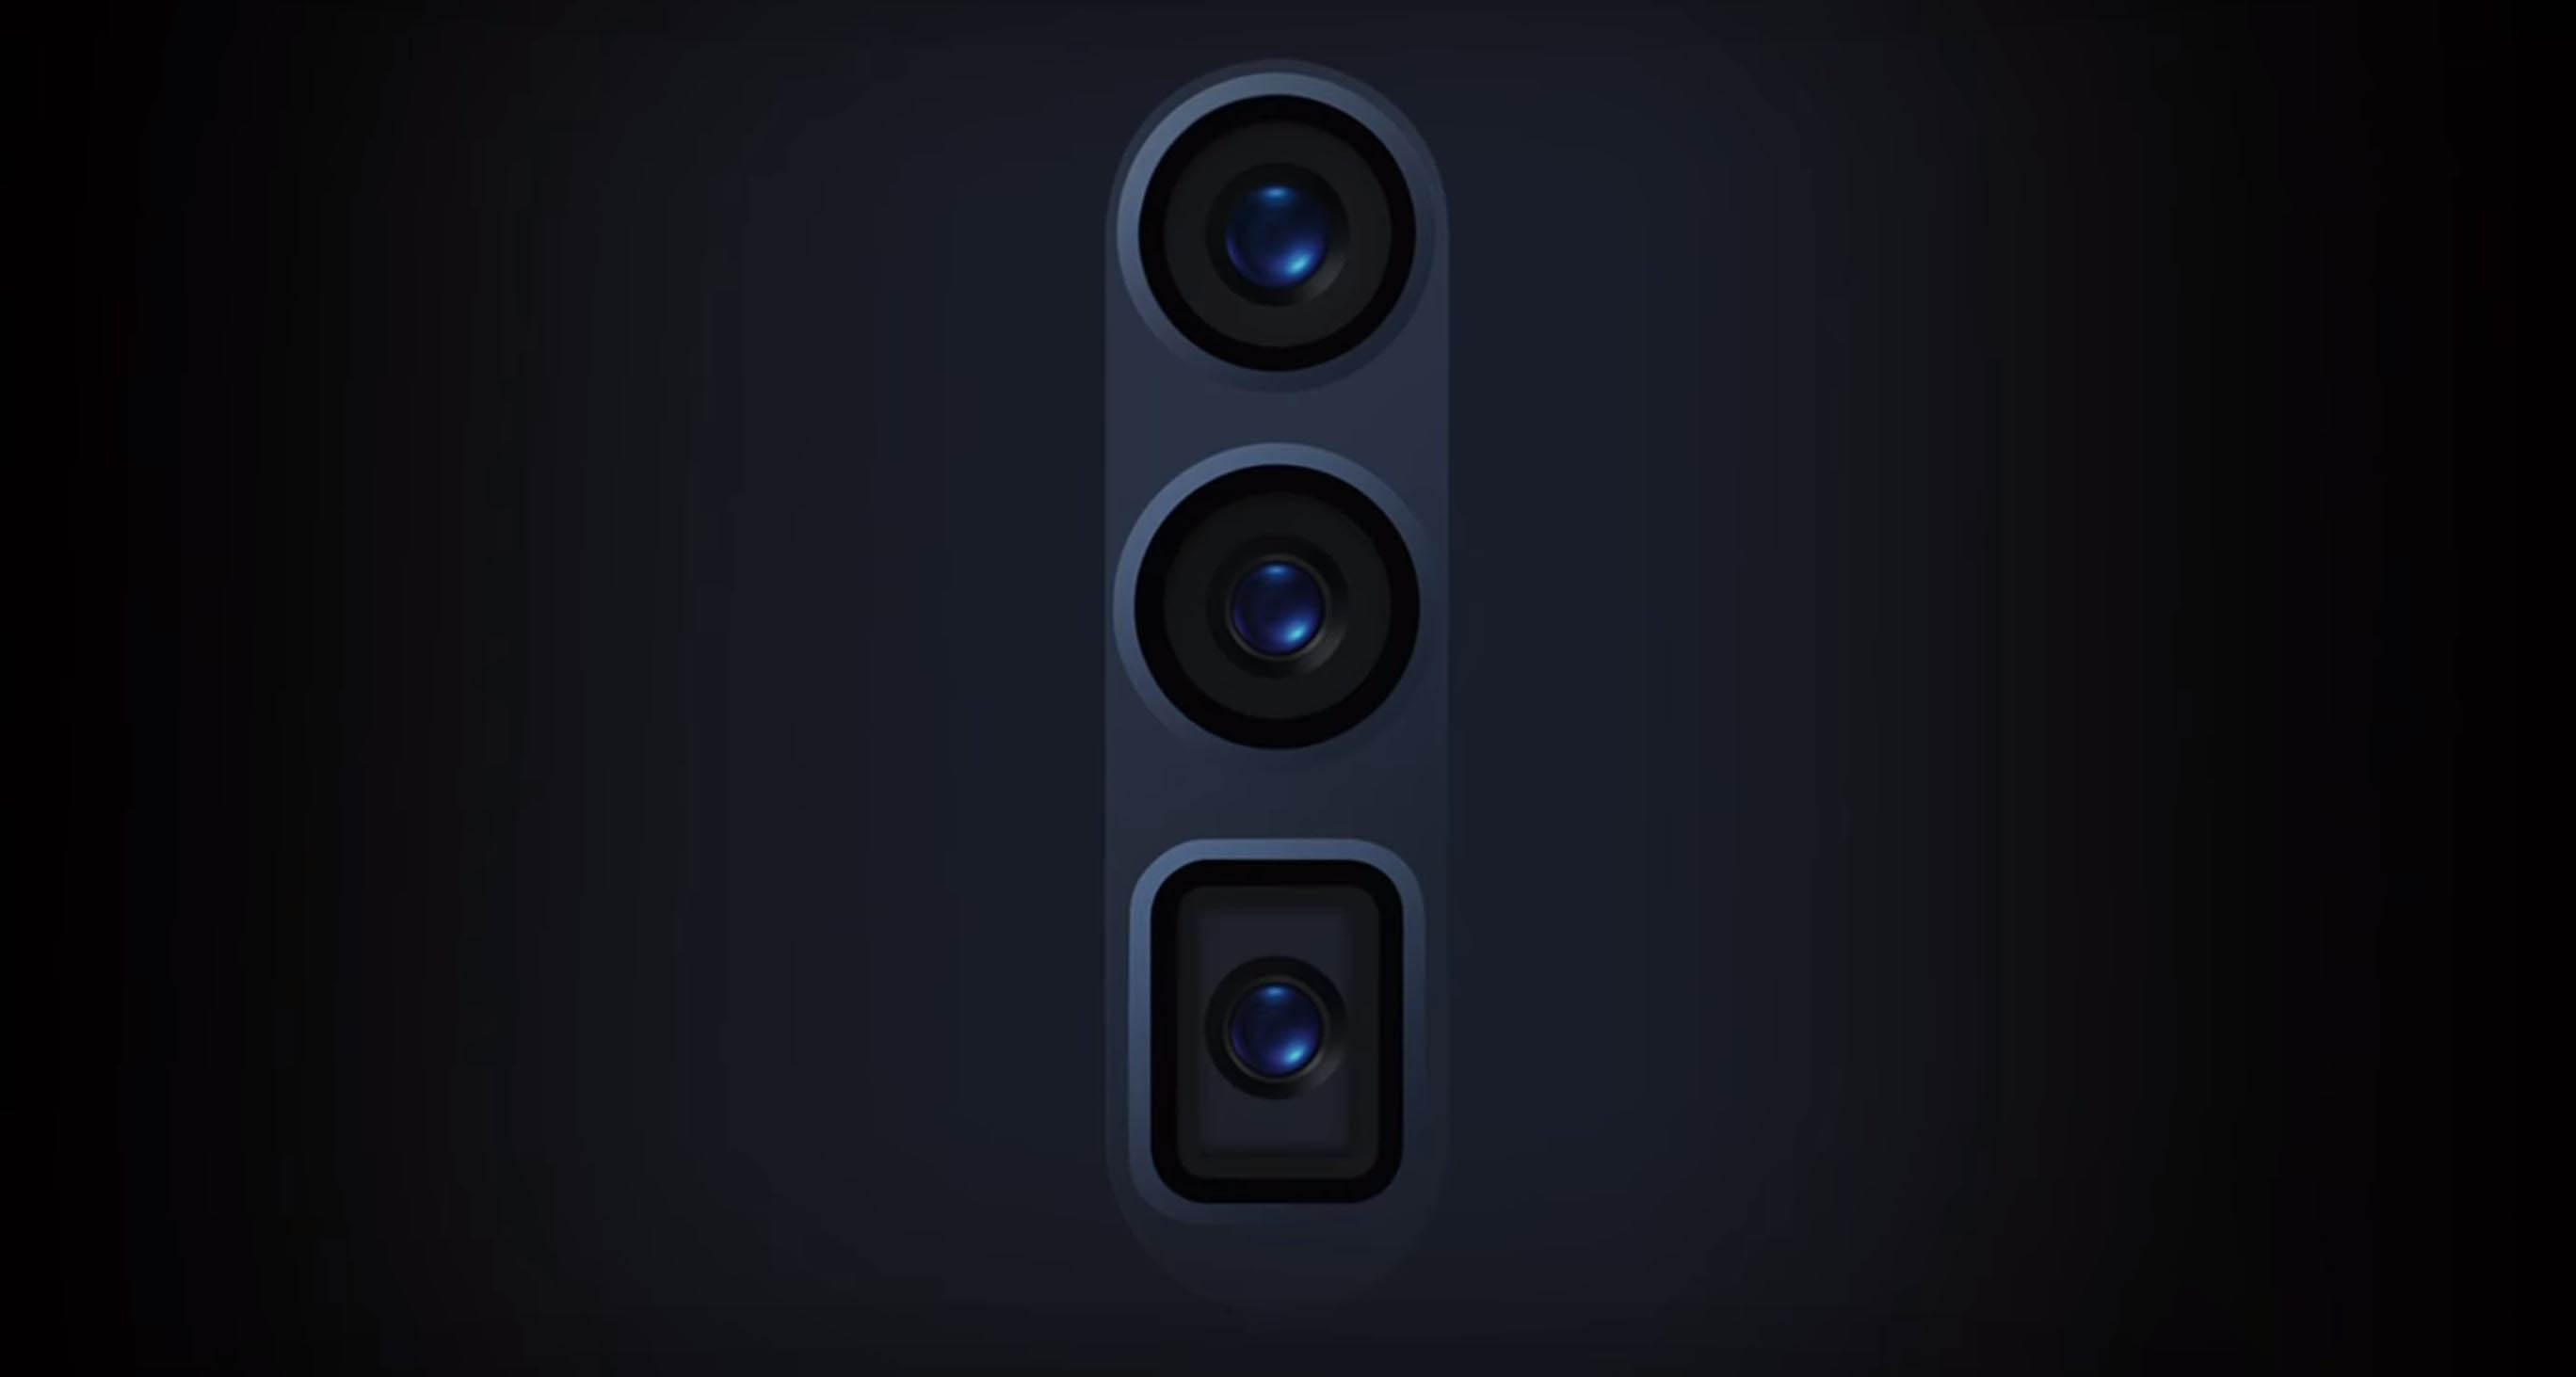 OPPO 10x Lossless Zoom Camera Render Official Trailer